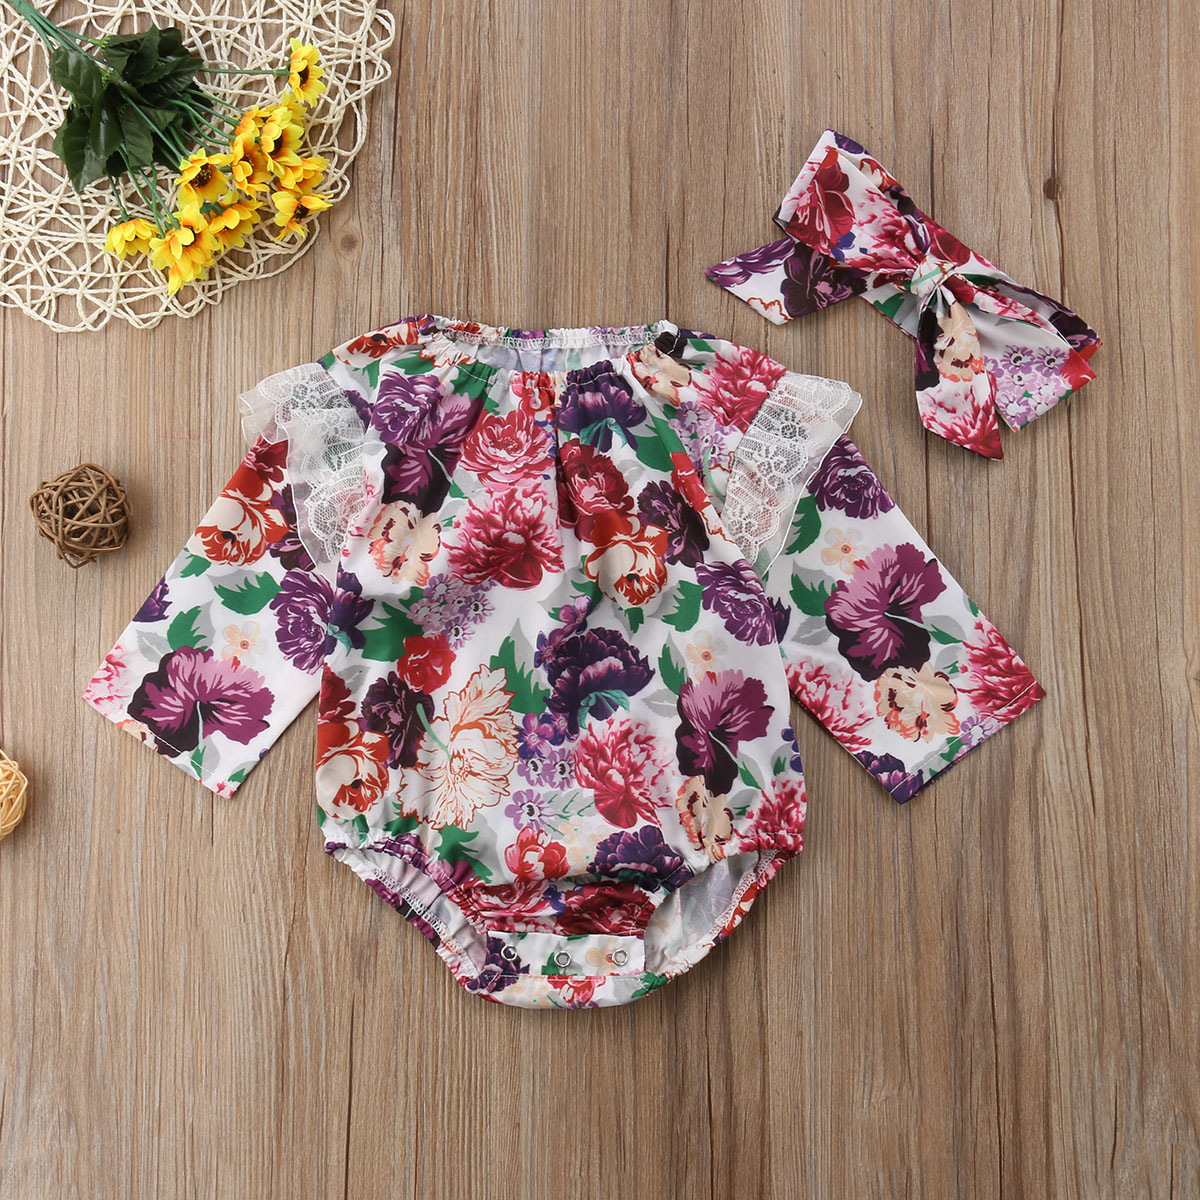 Newborn Toddle Baby Girls Floral Lace Bodysuit Jumpsuit Sunsuit Headband 2Pcs Cotton Outfit Clothes 0-24M Baby Girl